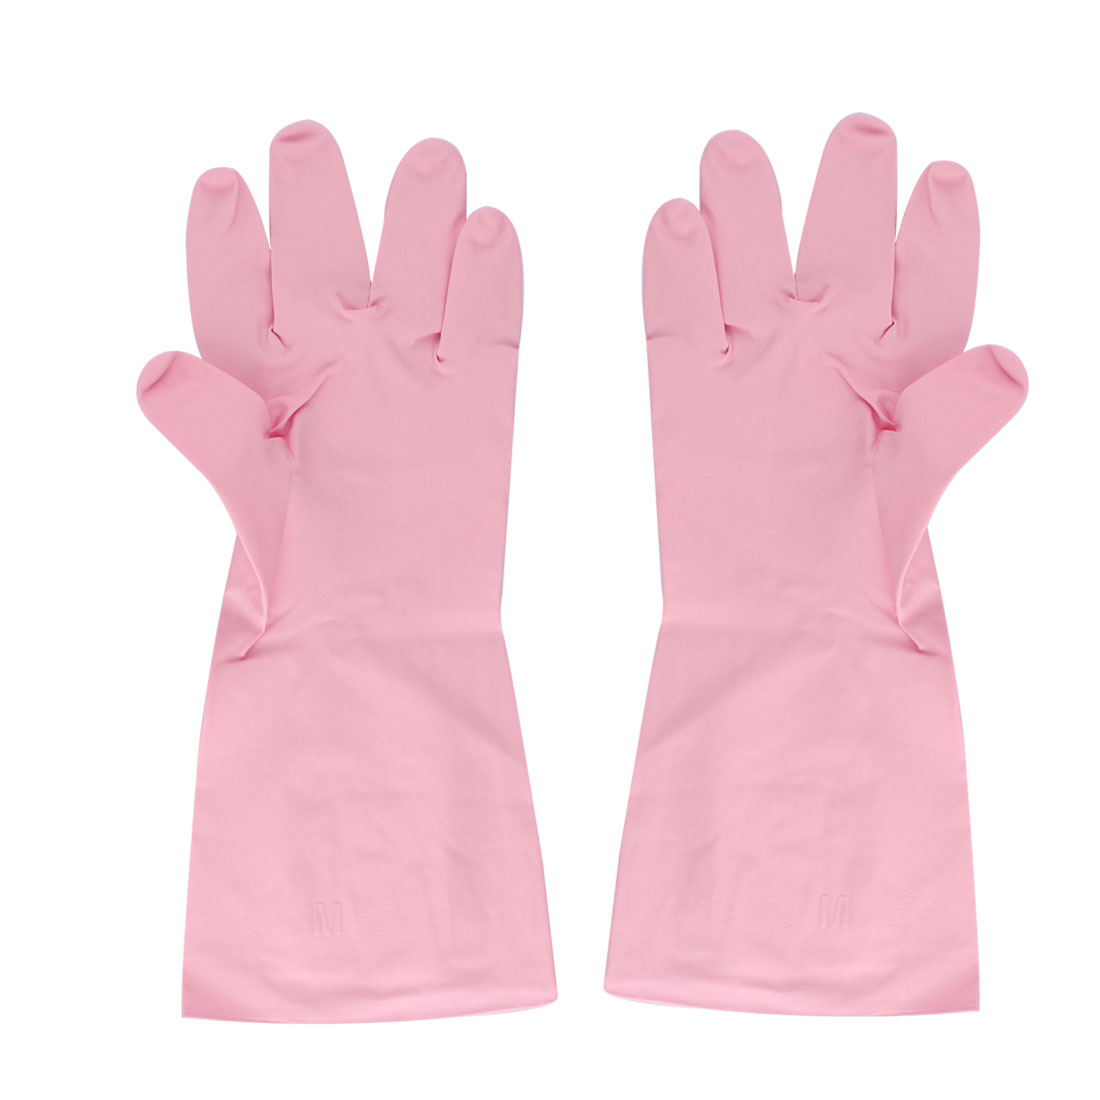 Pink Rubber Kitchen Dish Washing Cleaning Protect Hand Gloves Pair